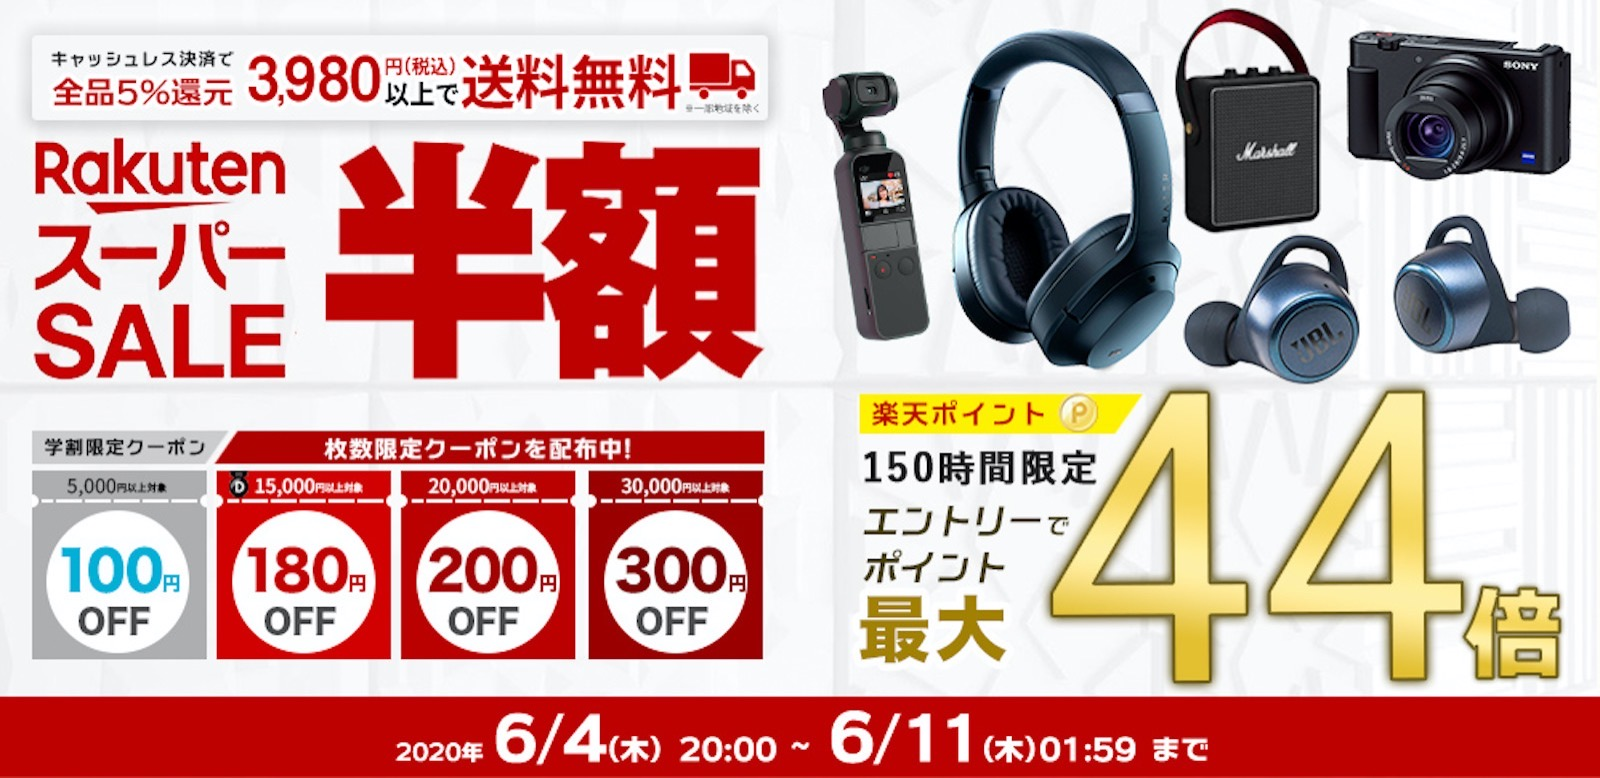 Rakuten supersale kitkat